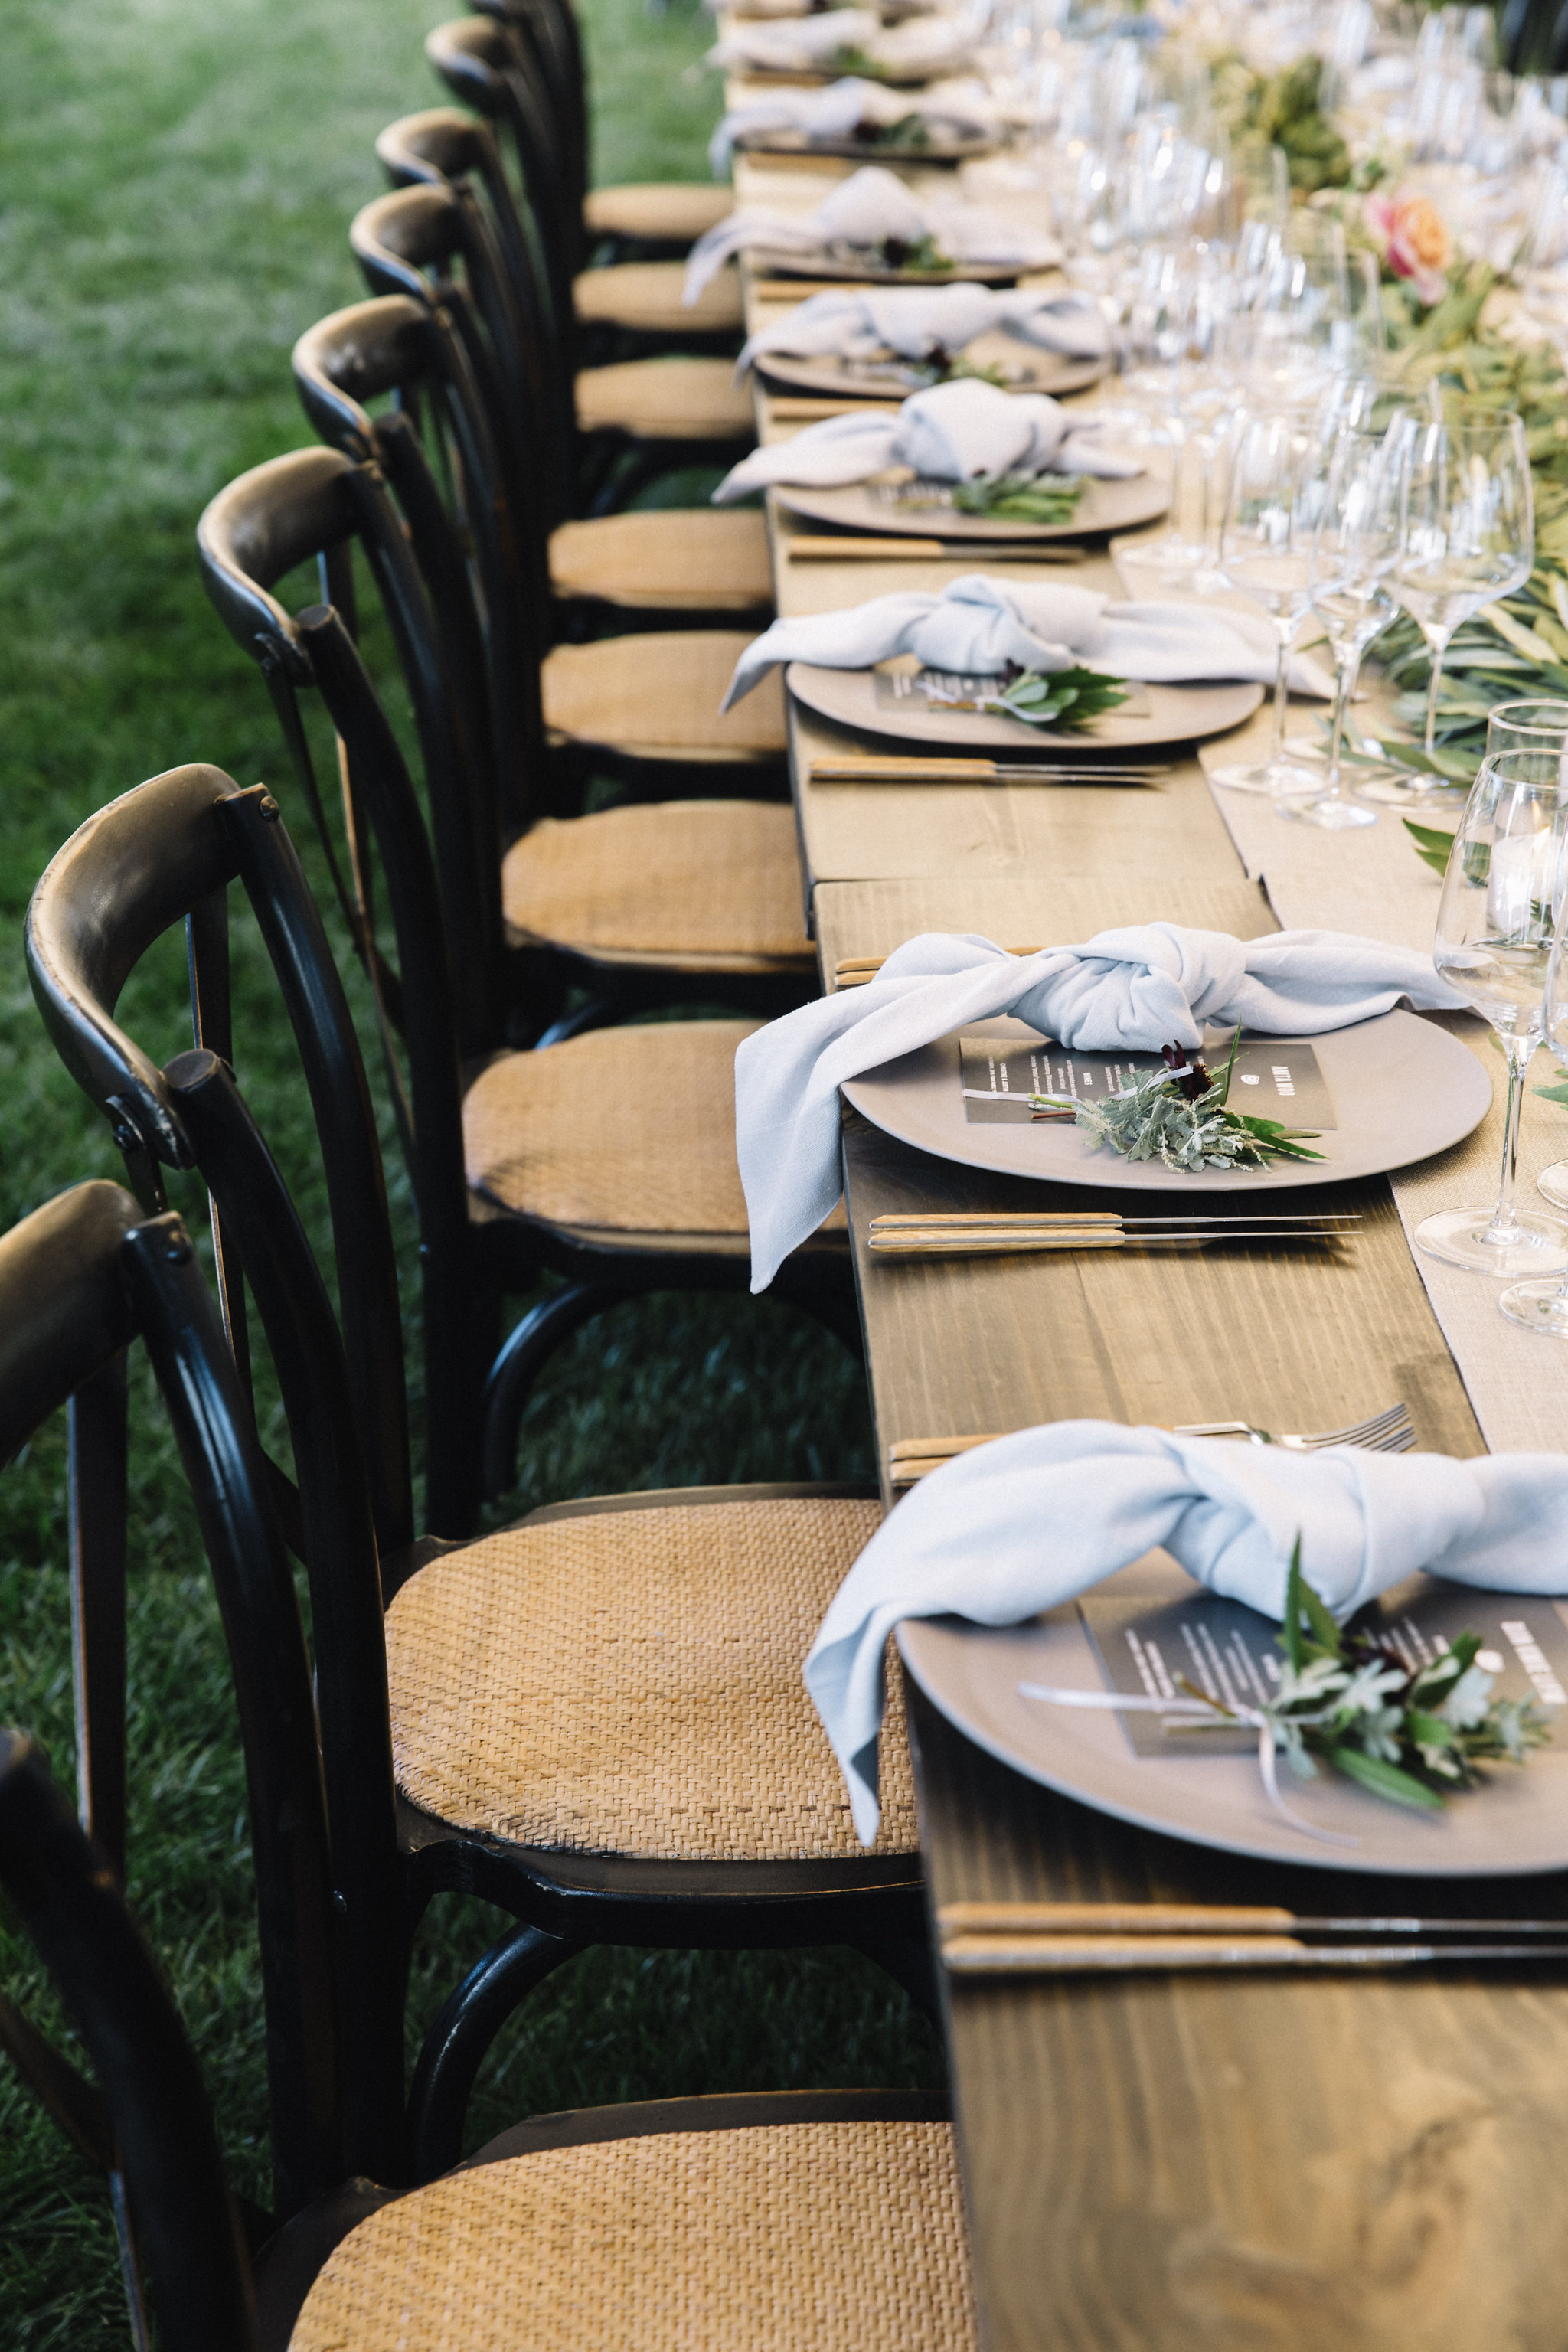 Floral place settings by Venn Floral | Photo by Lucille Lawrence